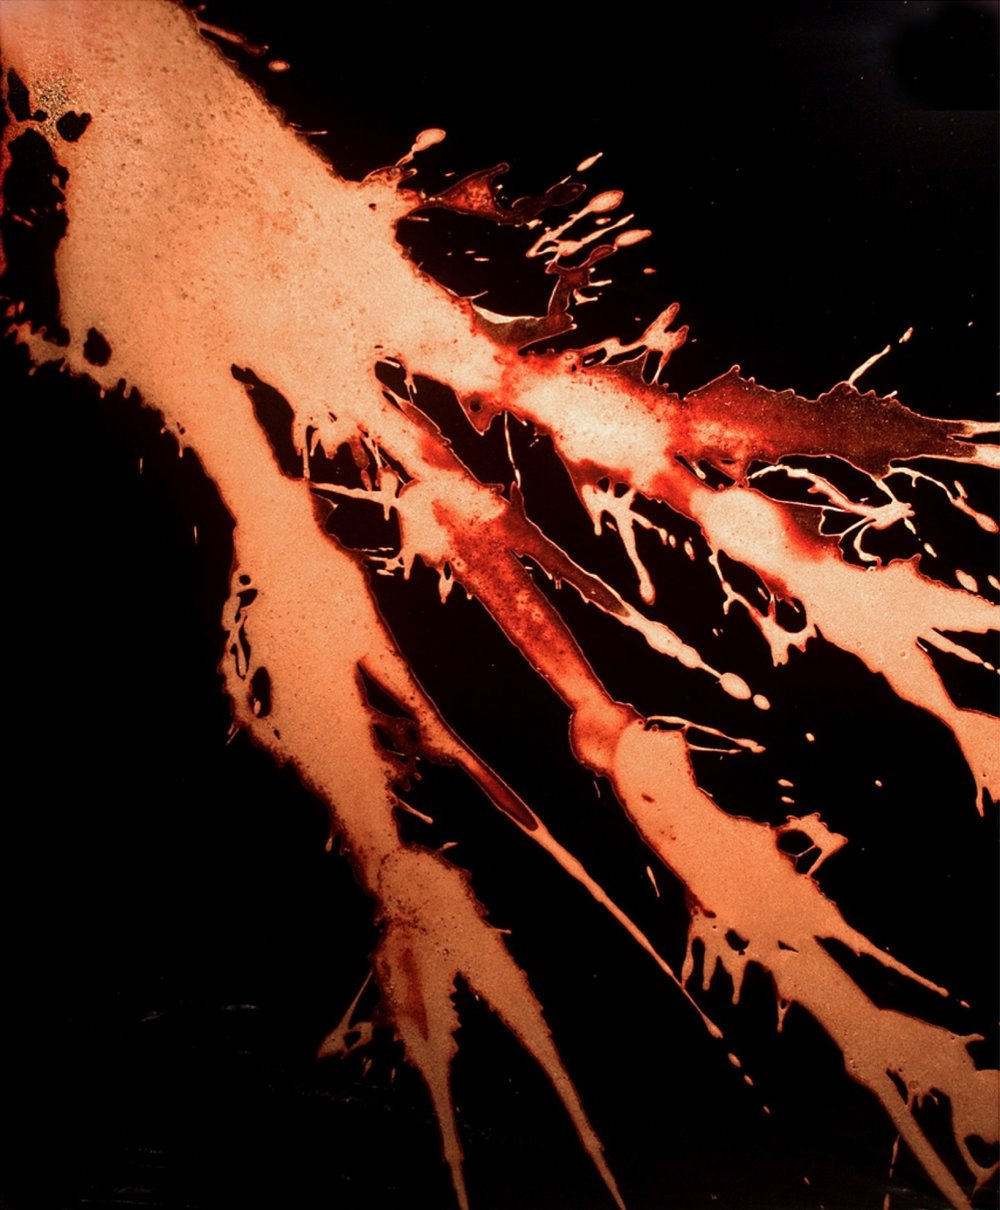 "FKTS 6, 2012 44 x 36 x 3"" blood, copper, preserved on plexiglass, UV resin Collection of the Princeton University Art Museum"